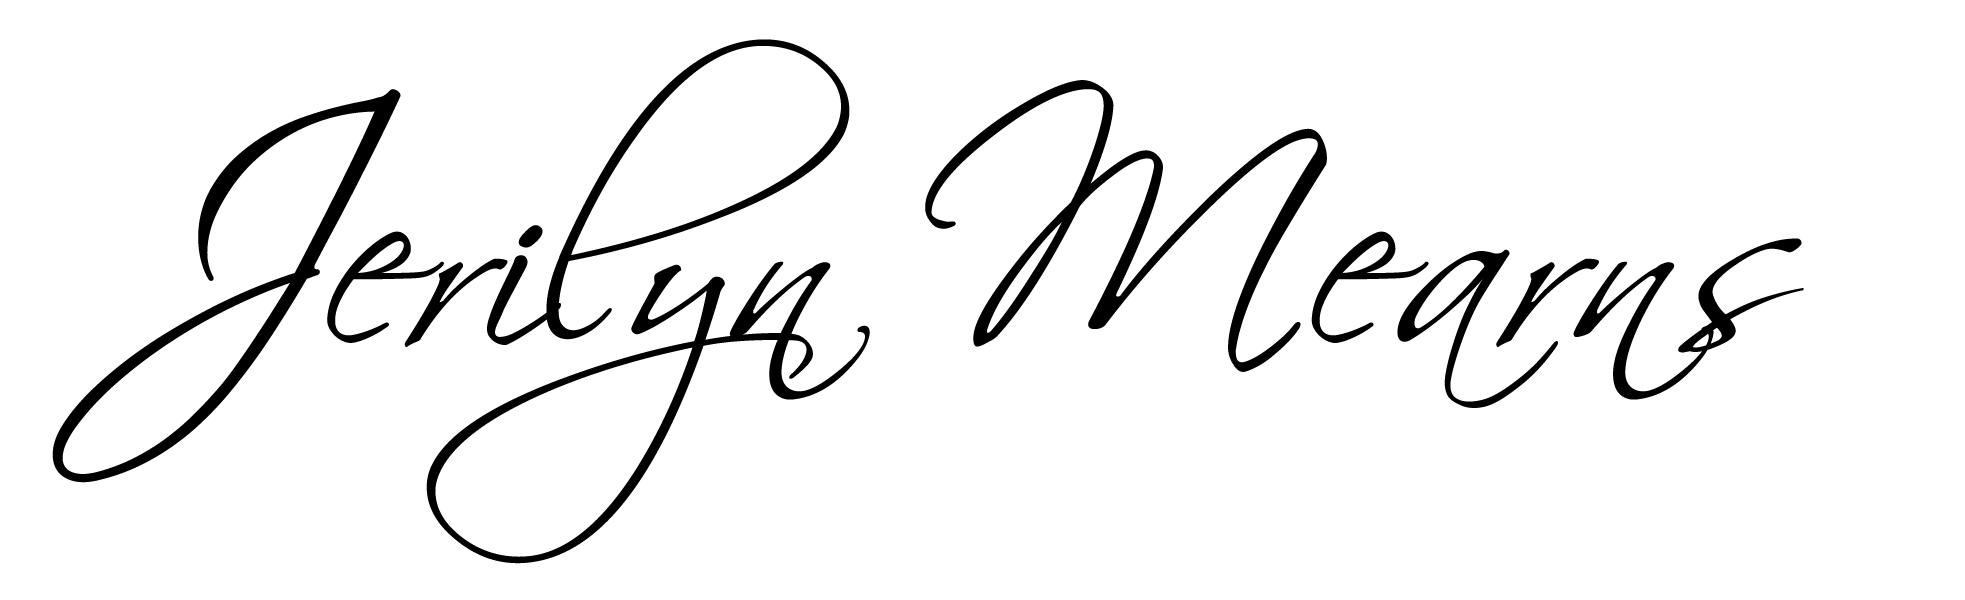 Jeri Mearns's Signature